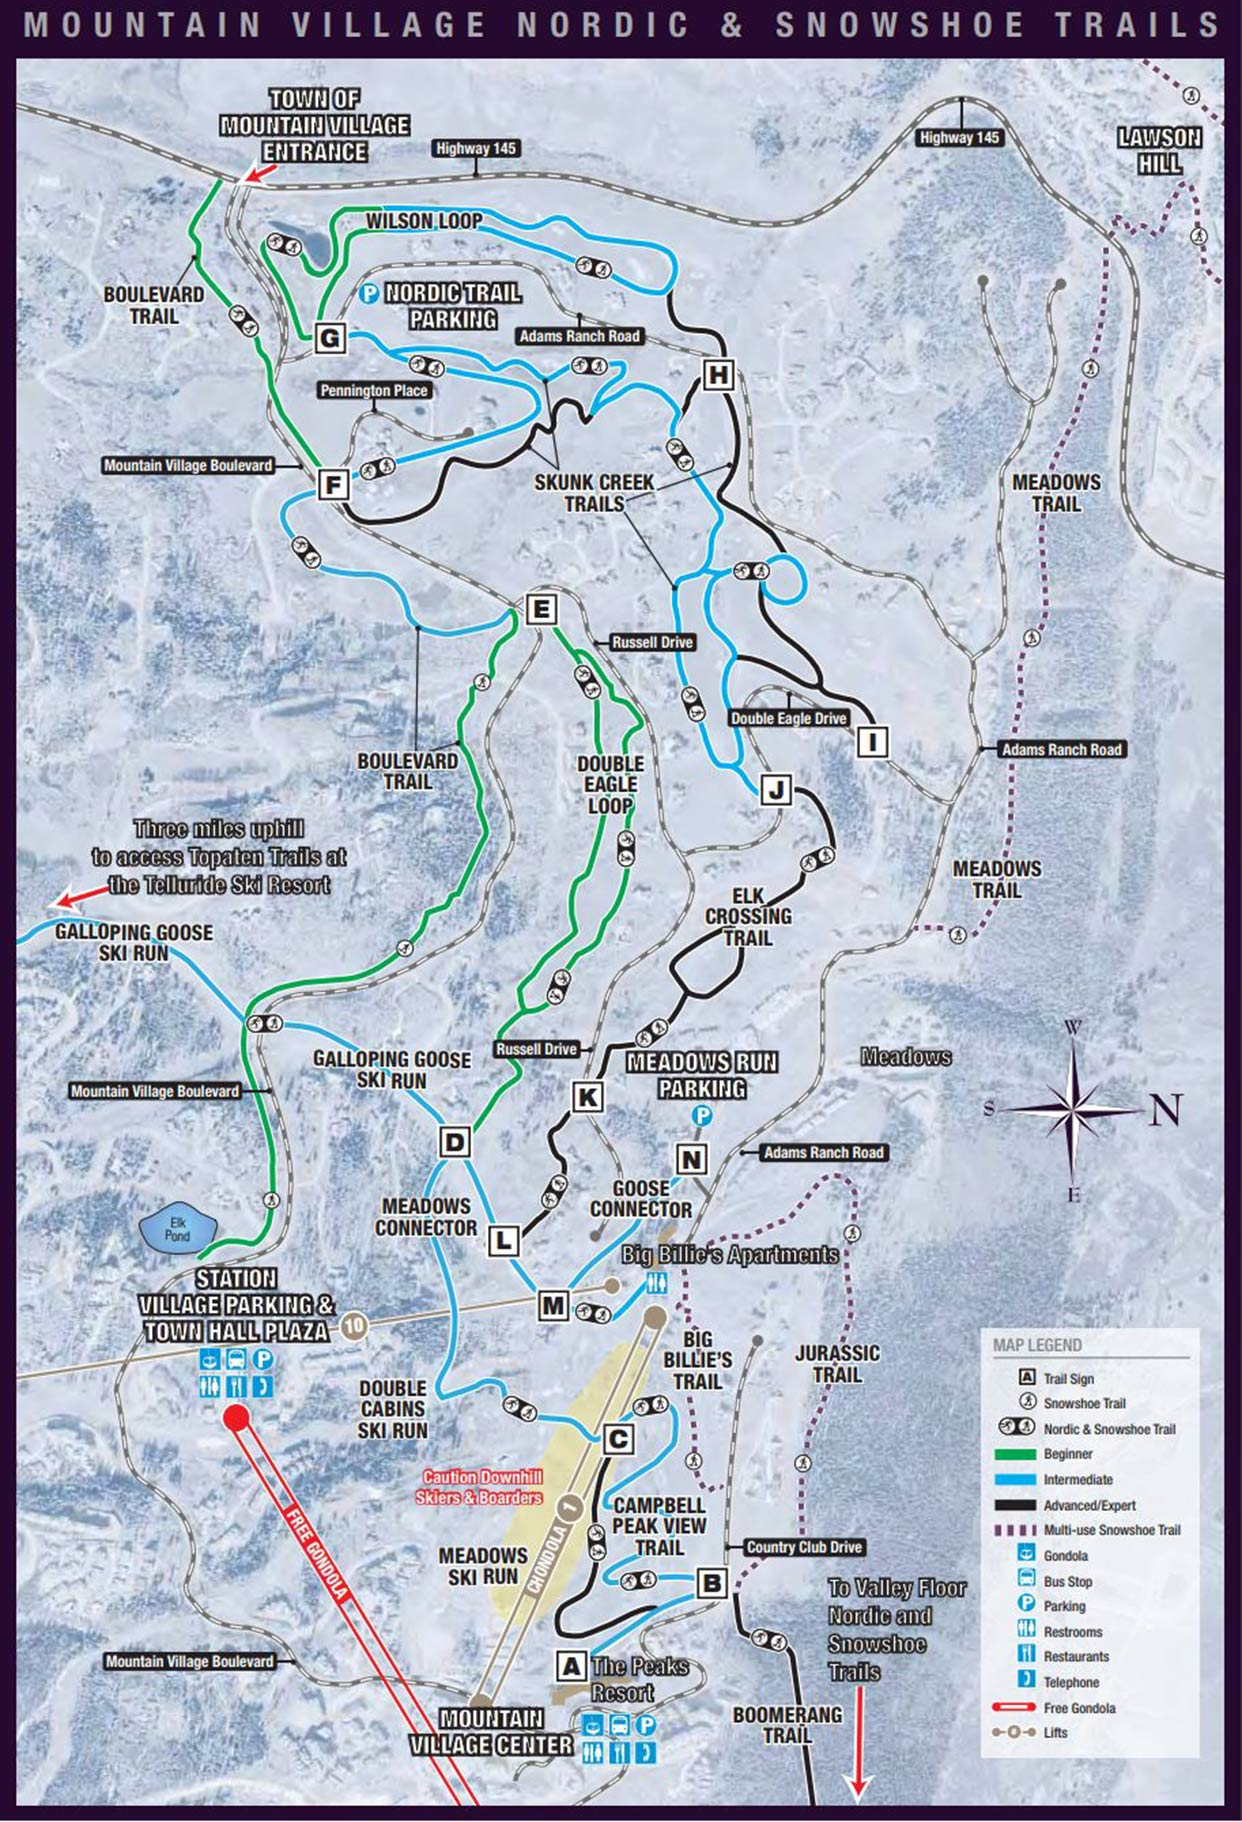 TOMV Nordic & Snowshoe Trail Map